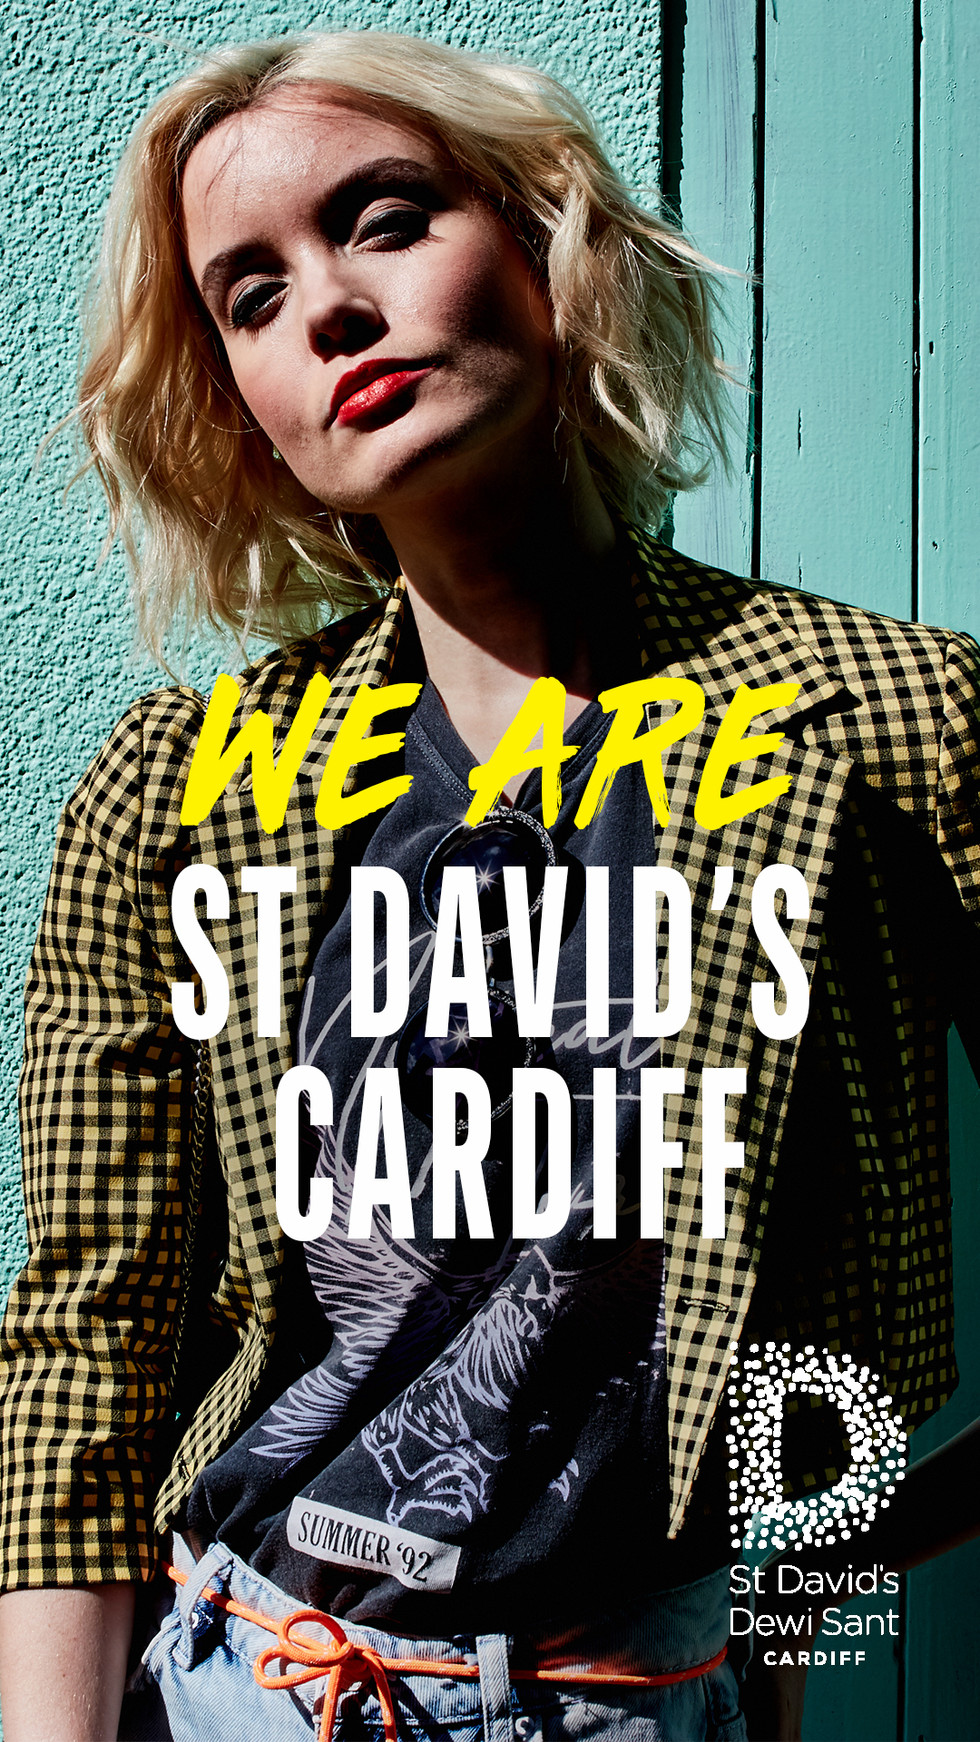 We Are St David's Cardiff - SS19 Print Campaign - Fashion